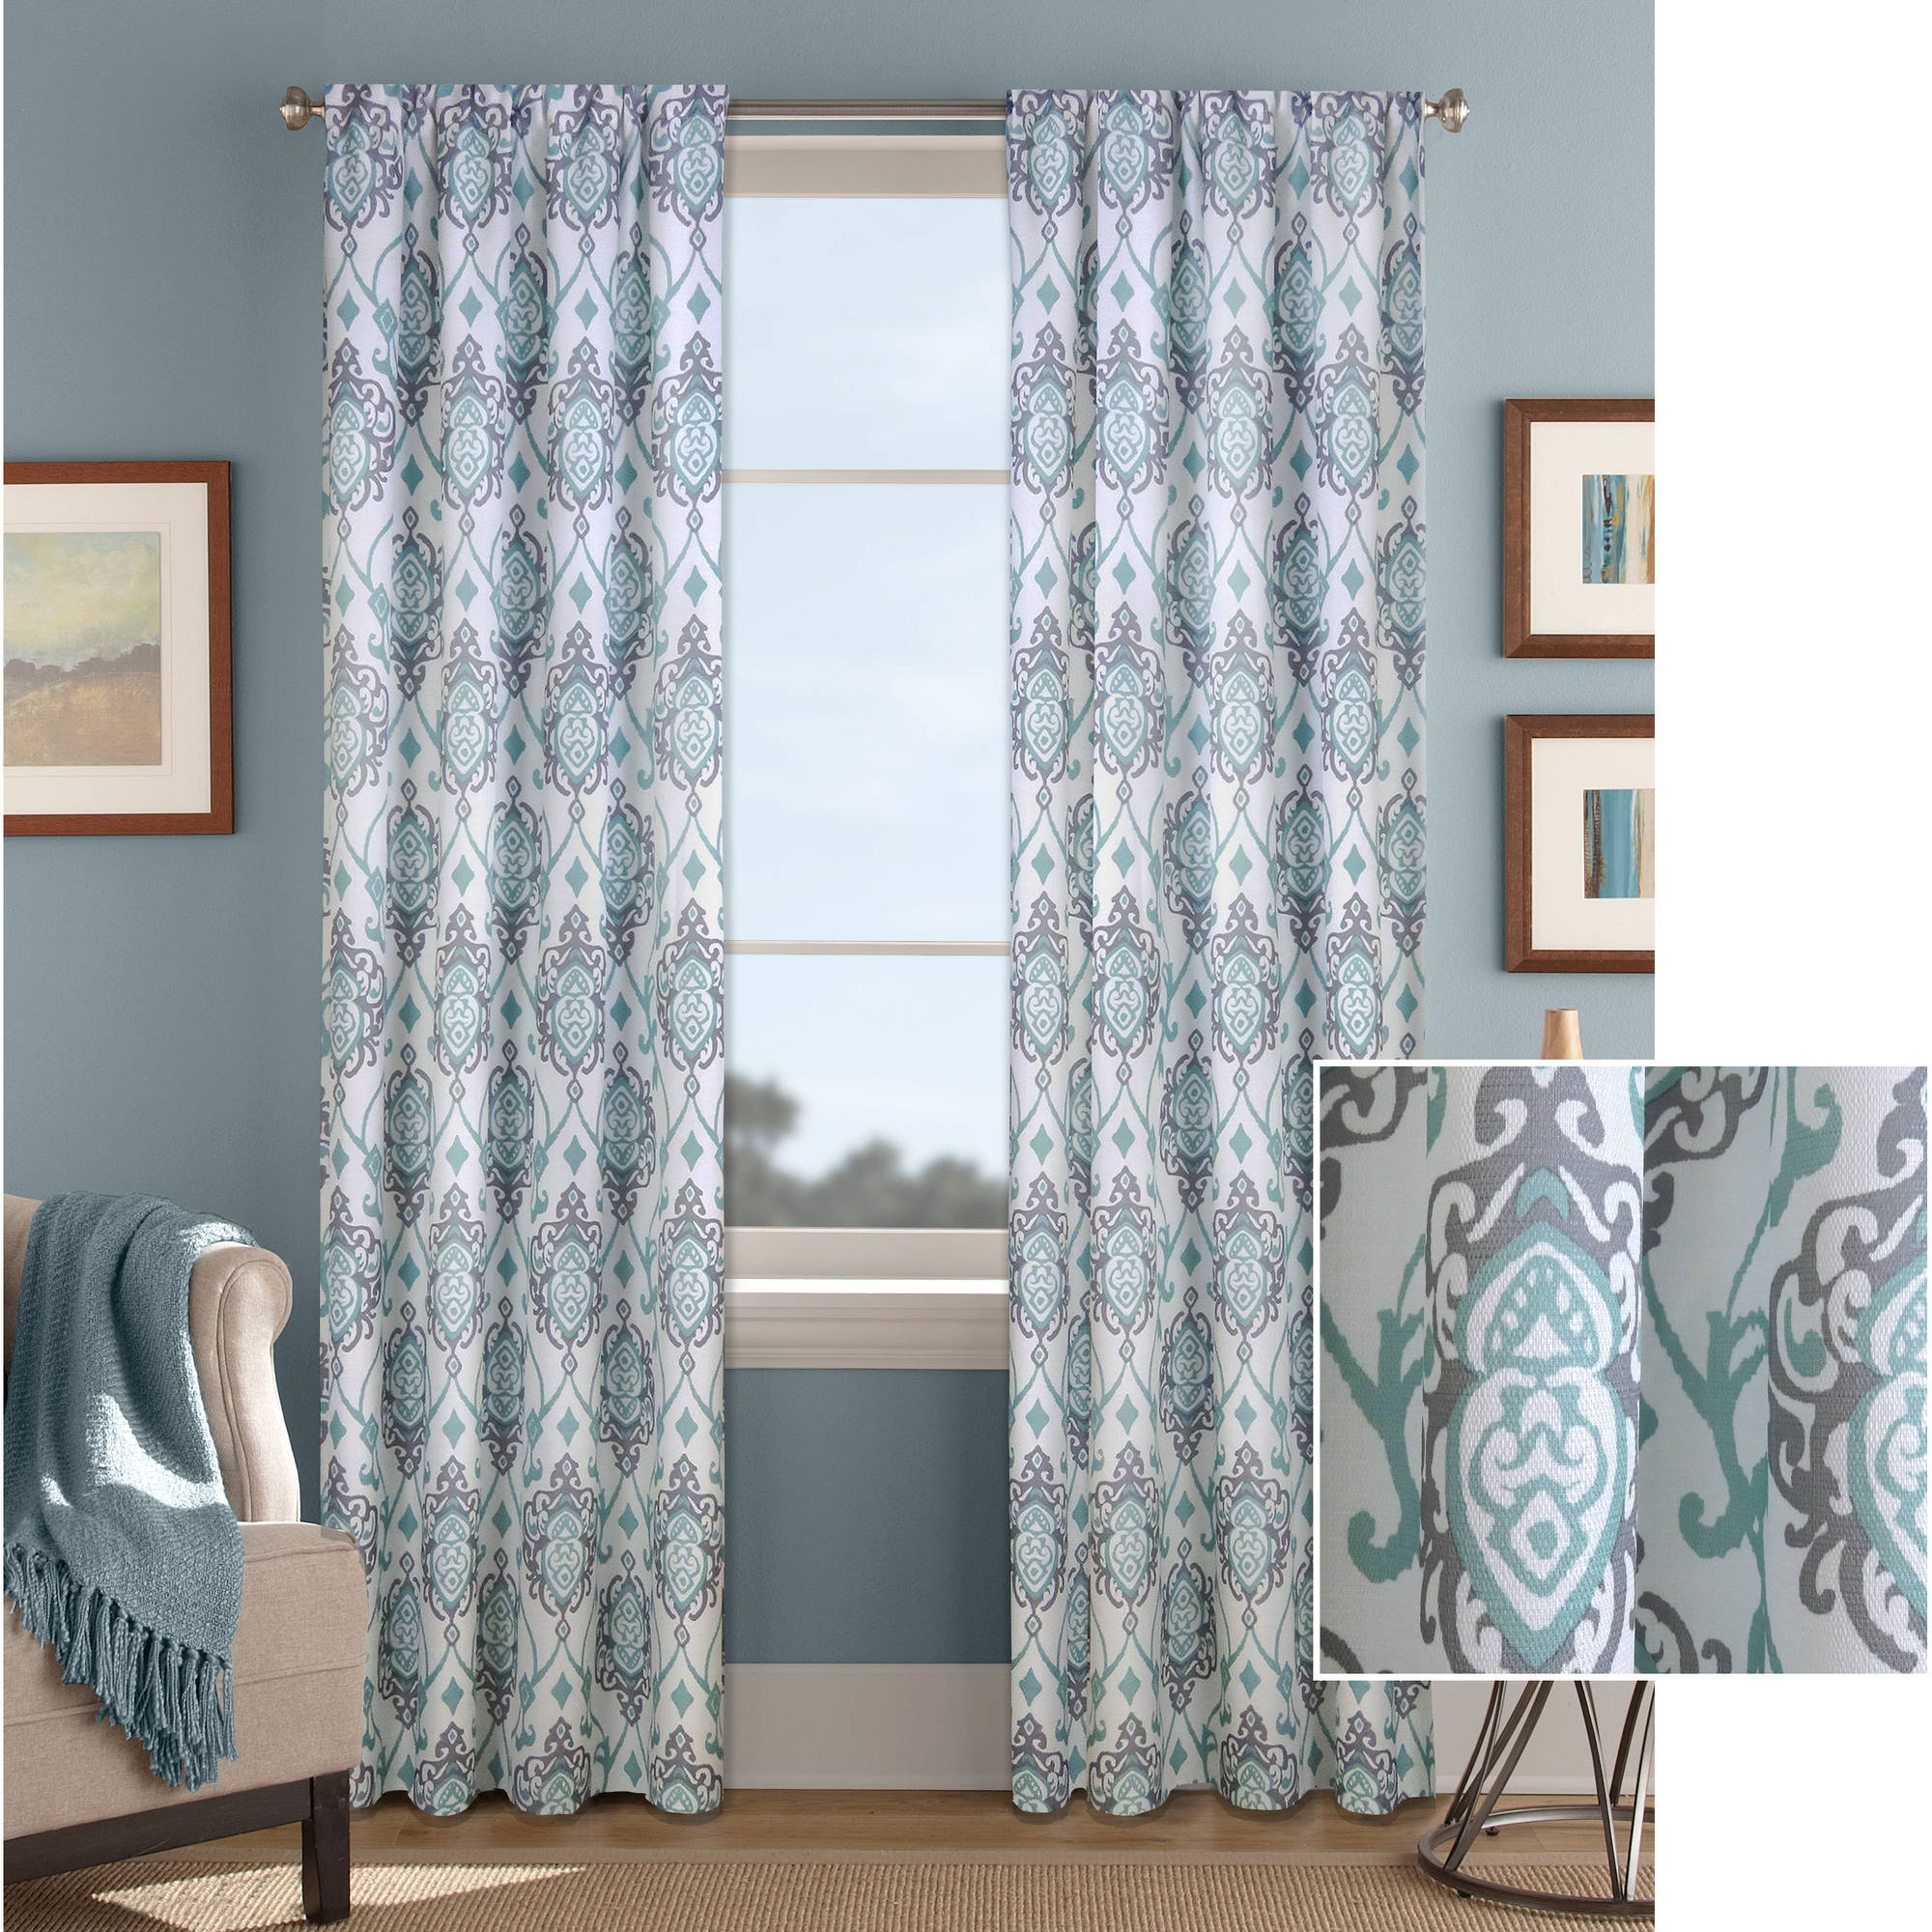 Better Homes & Gardens Damask Scroll Curtain Panel - Walmart.com